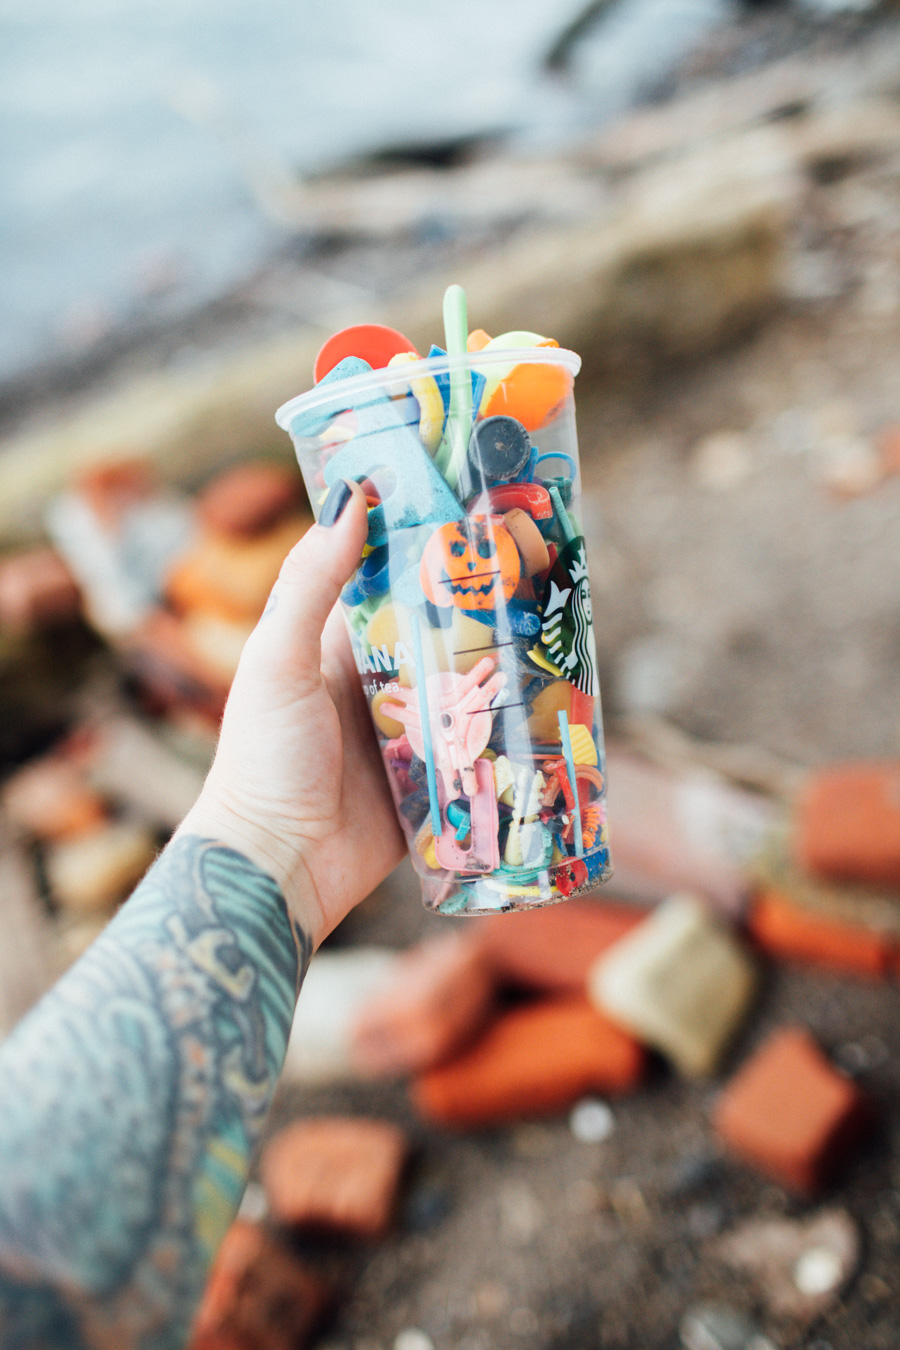 plastic pollution found along the shores of Lake Erie